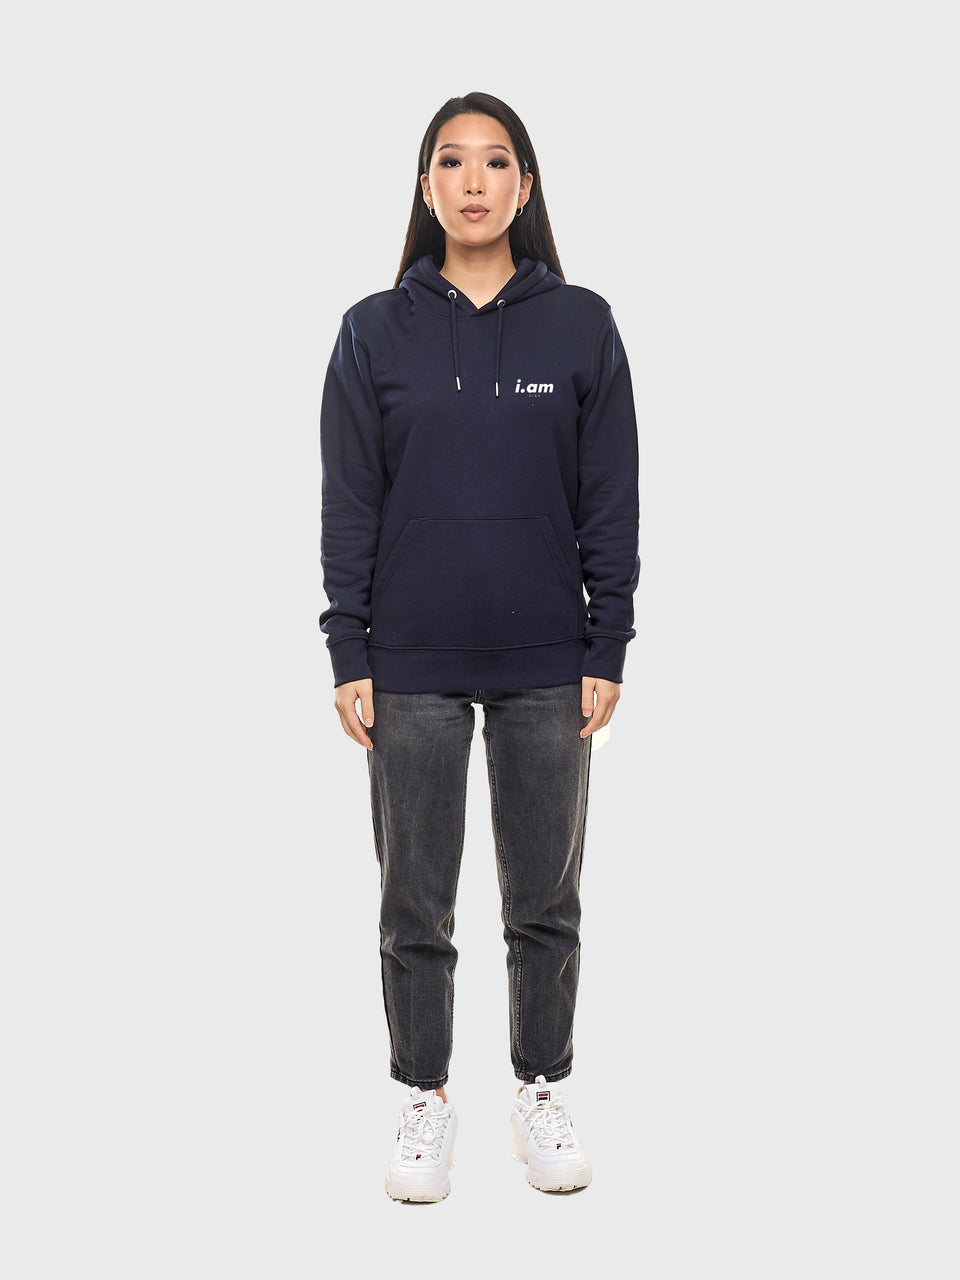 Not a copy - Navy - Unisex pull over hoodie